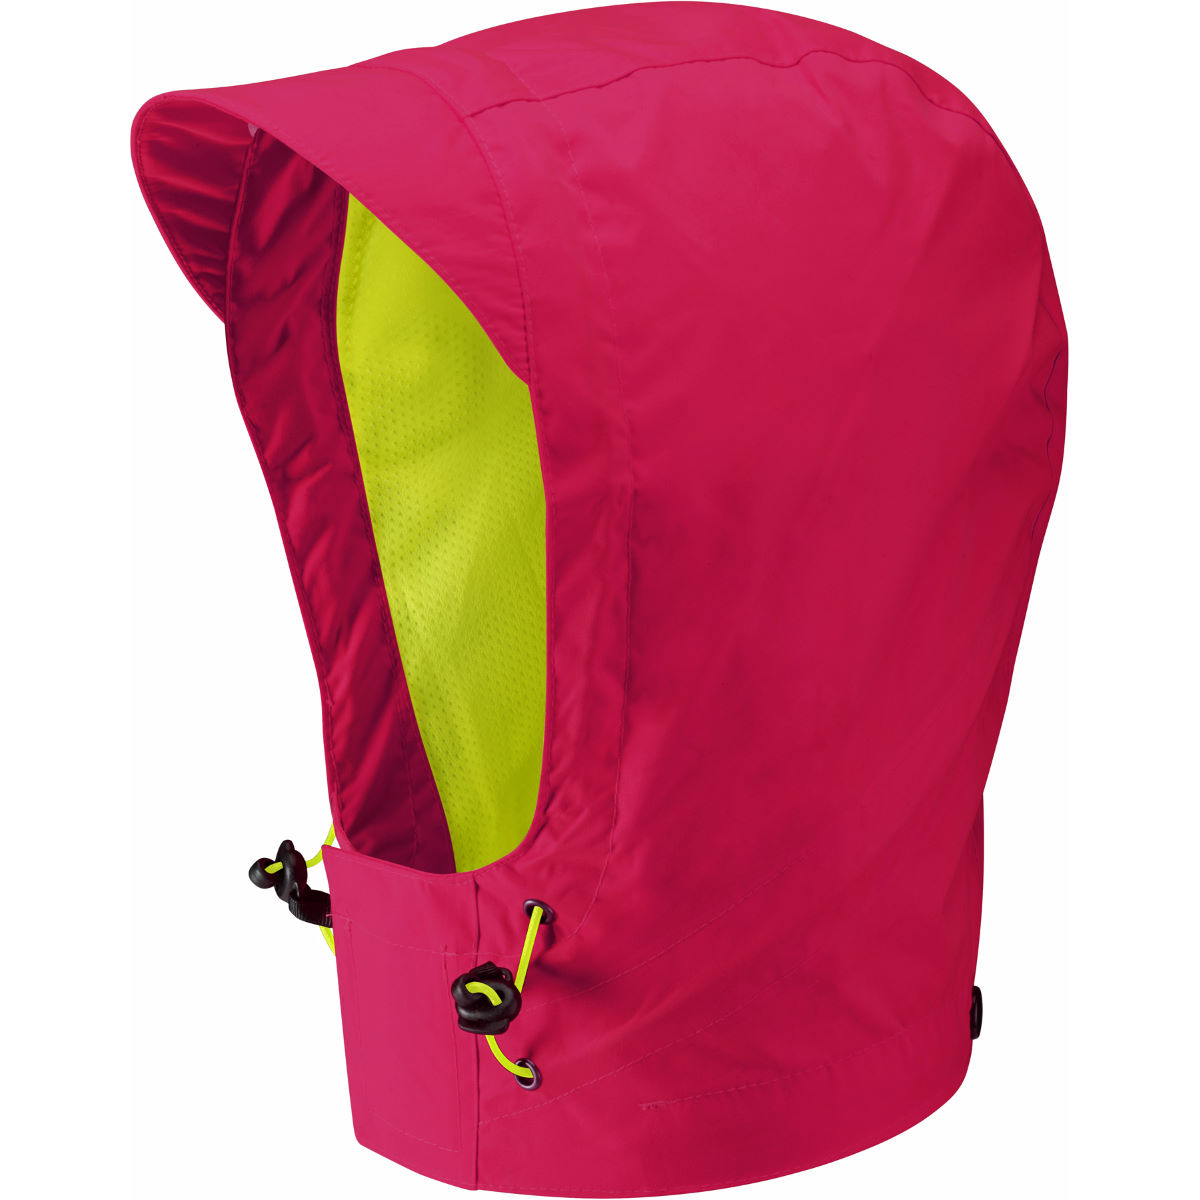 Image of Capuche Altura Night Vision Evo - Taille unique Rose | Vestes